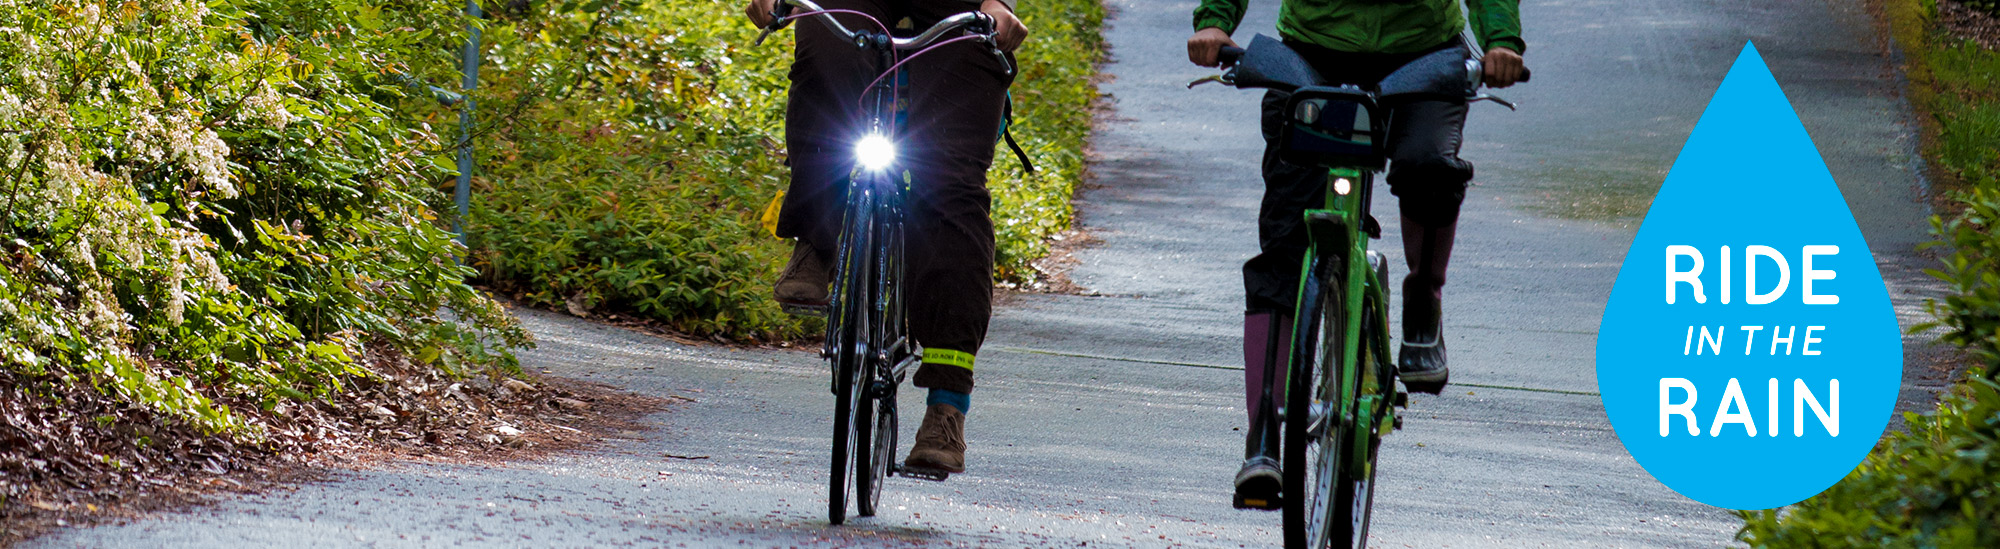 Riders on the Burke-Gilman Trail with RITR logo